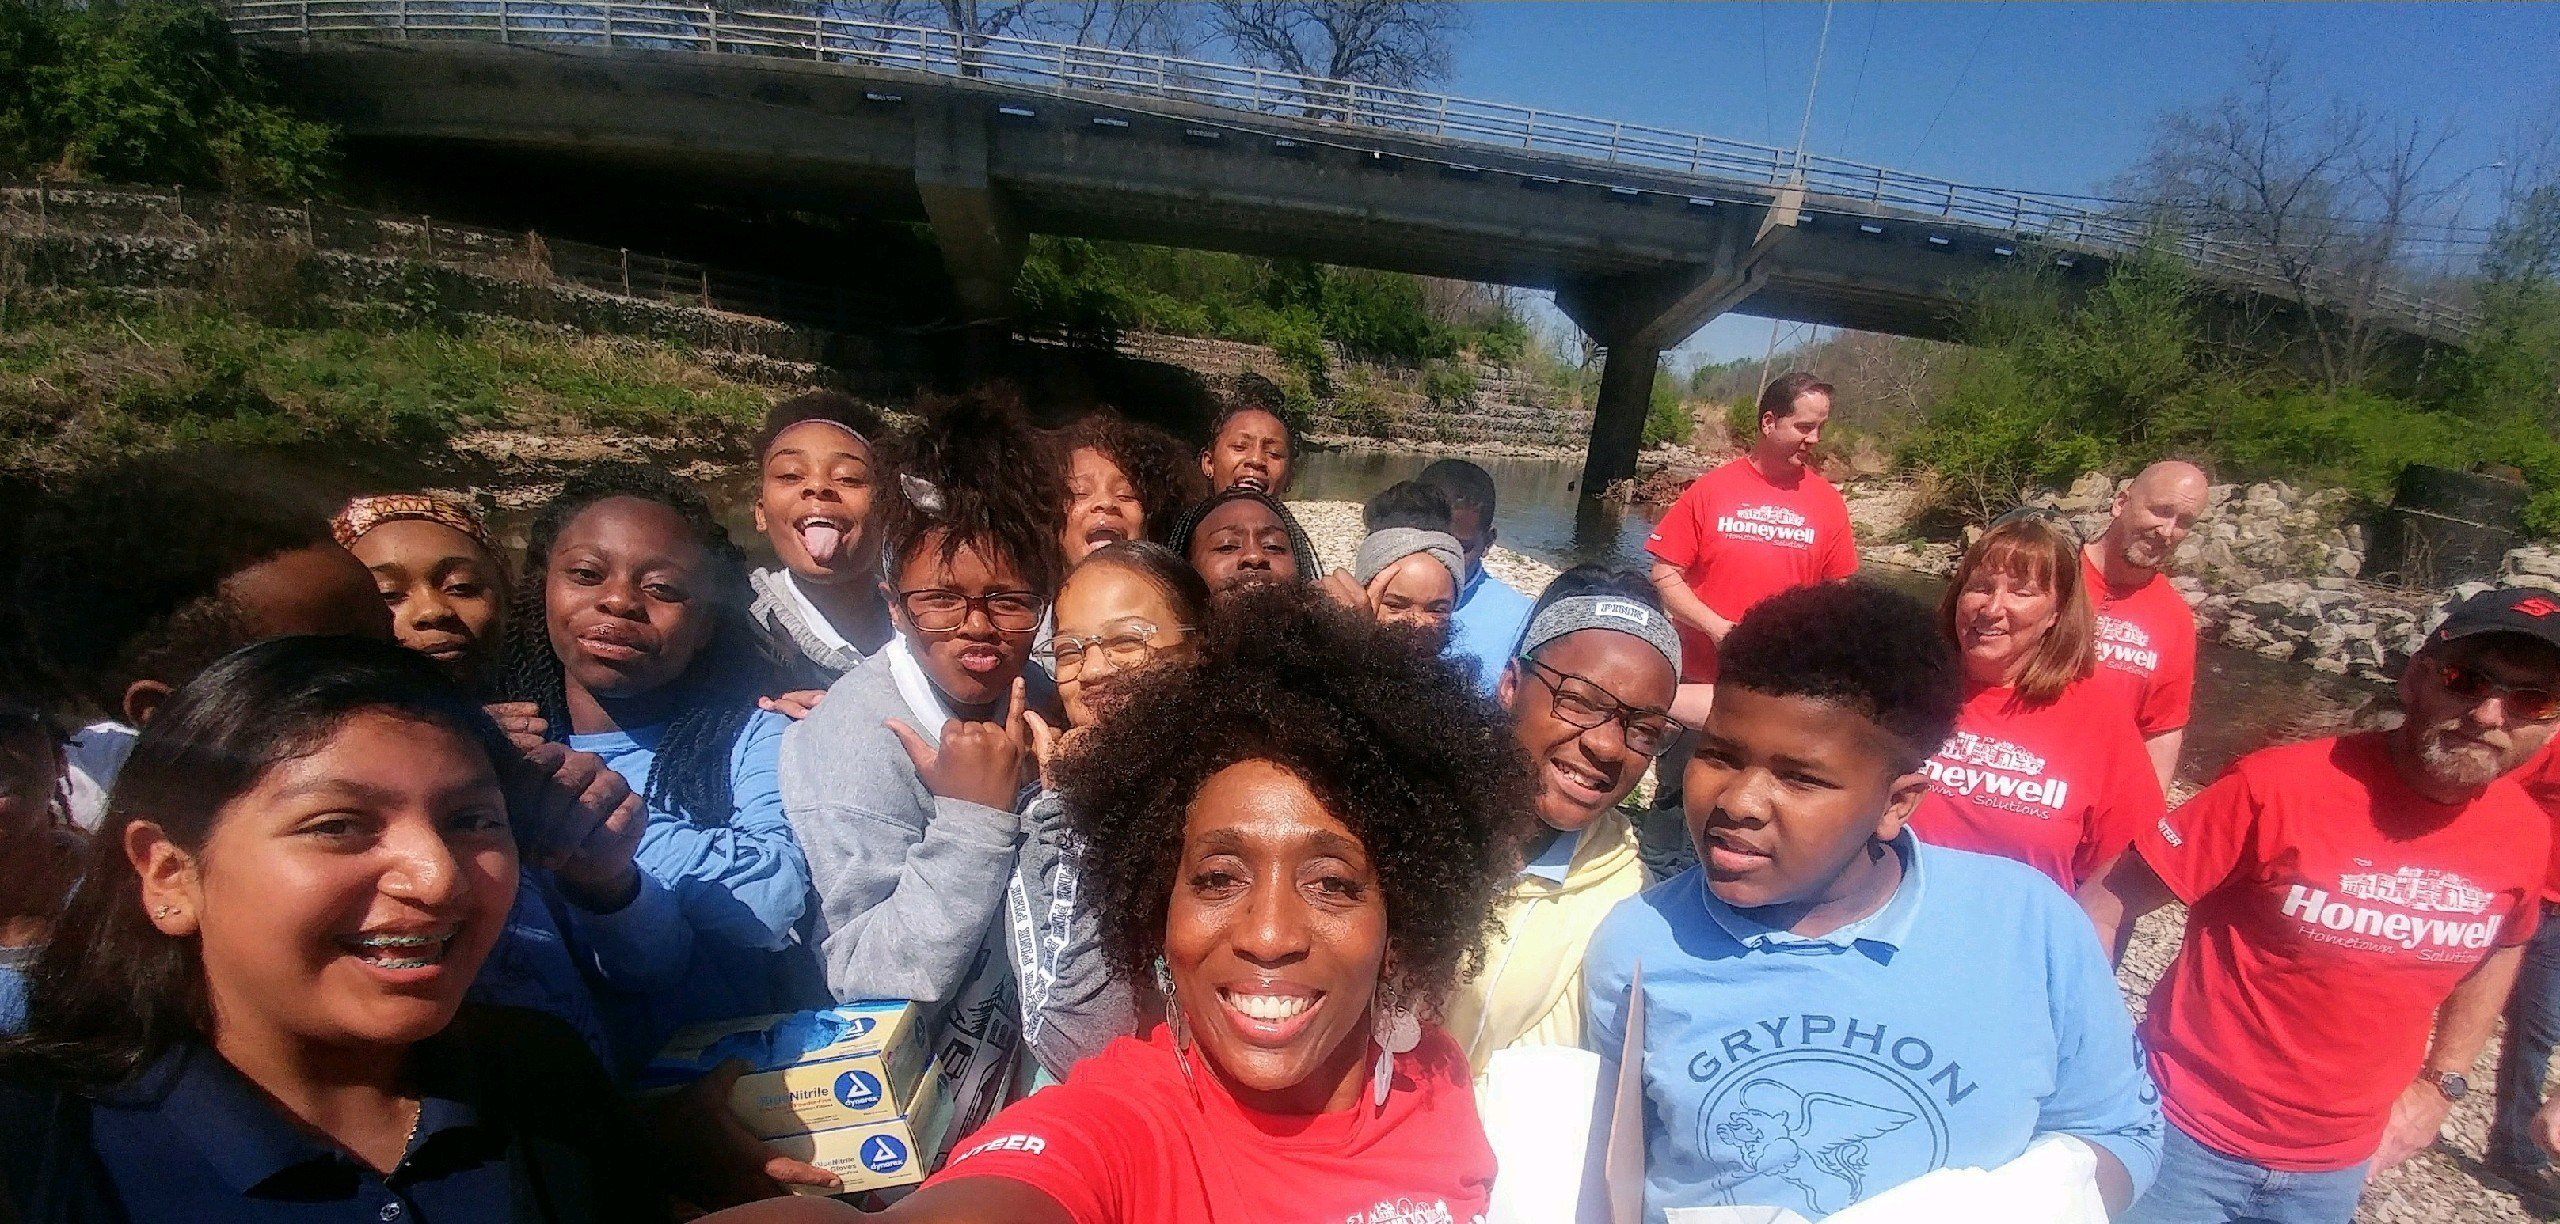 Over 60 seventh-graders from University Academy partnered up with professionals from Honeywell to get out of the classroom to sample and test the water in the community they live in. (Abigael Jaymes/KCTV5 News)